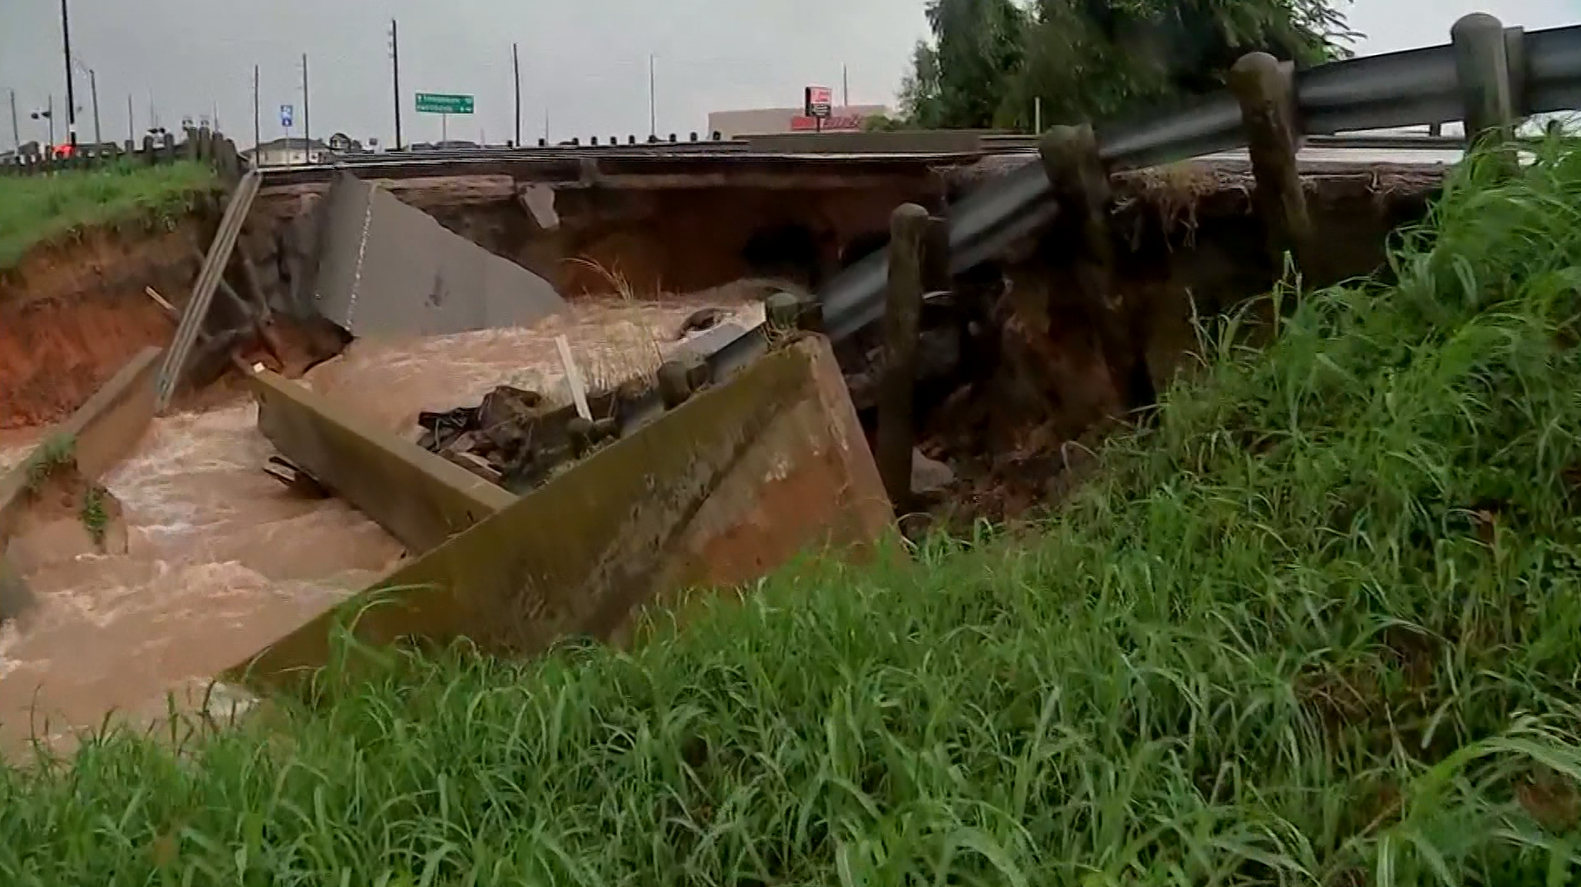 Washed out road near raging flood waters in Rosenberg, TX (KTRK/CNN)